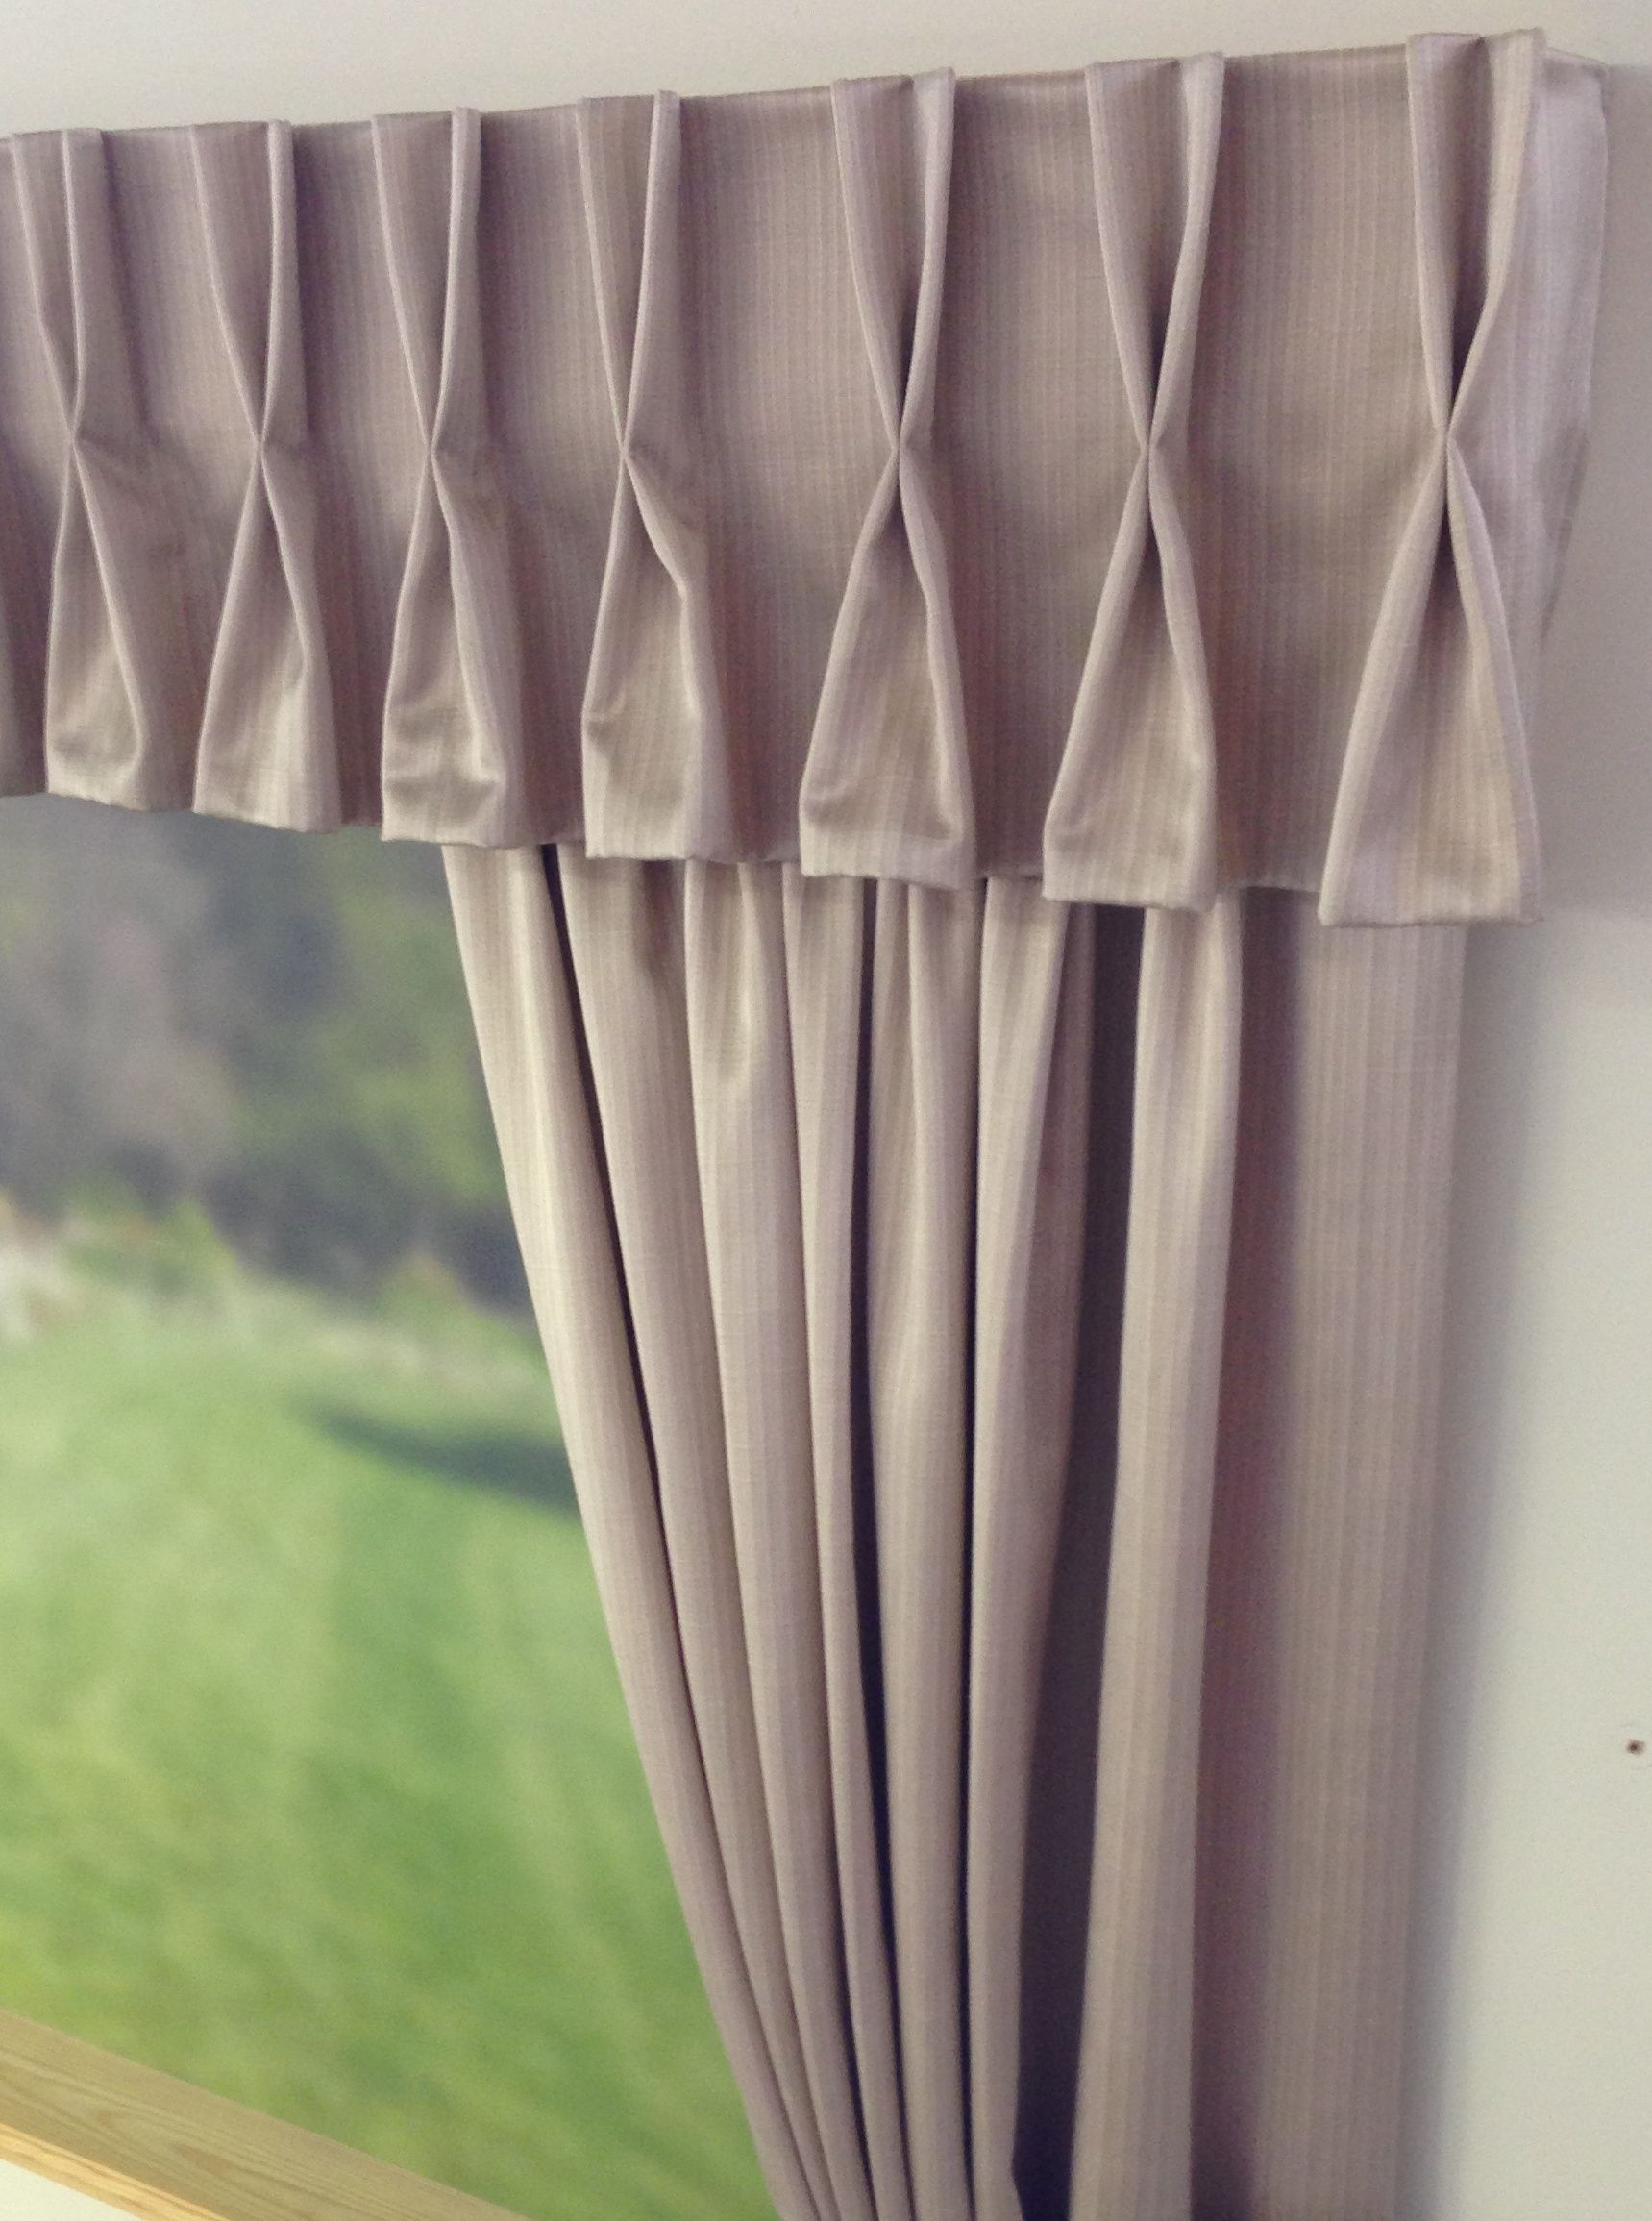 Duo Pleat Curtain Valance Perde Modelleri Pinterest